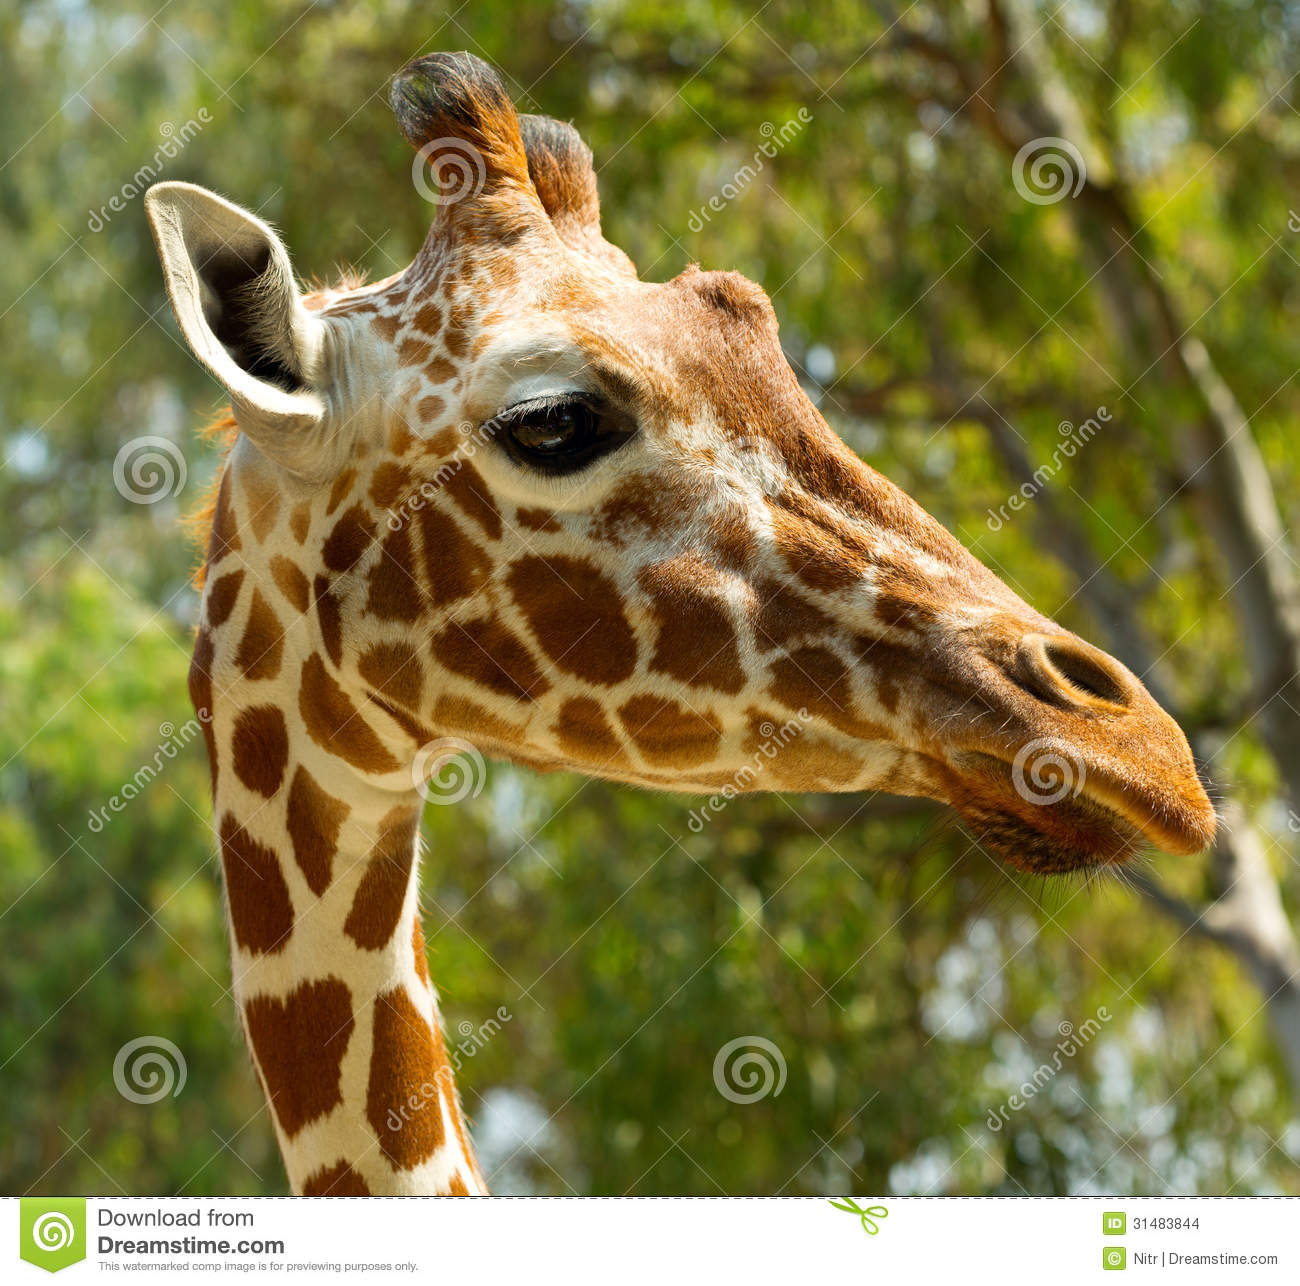 Giraffe head close up - photo#23